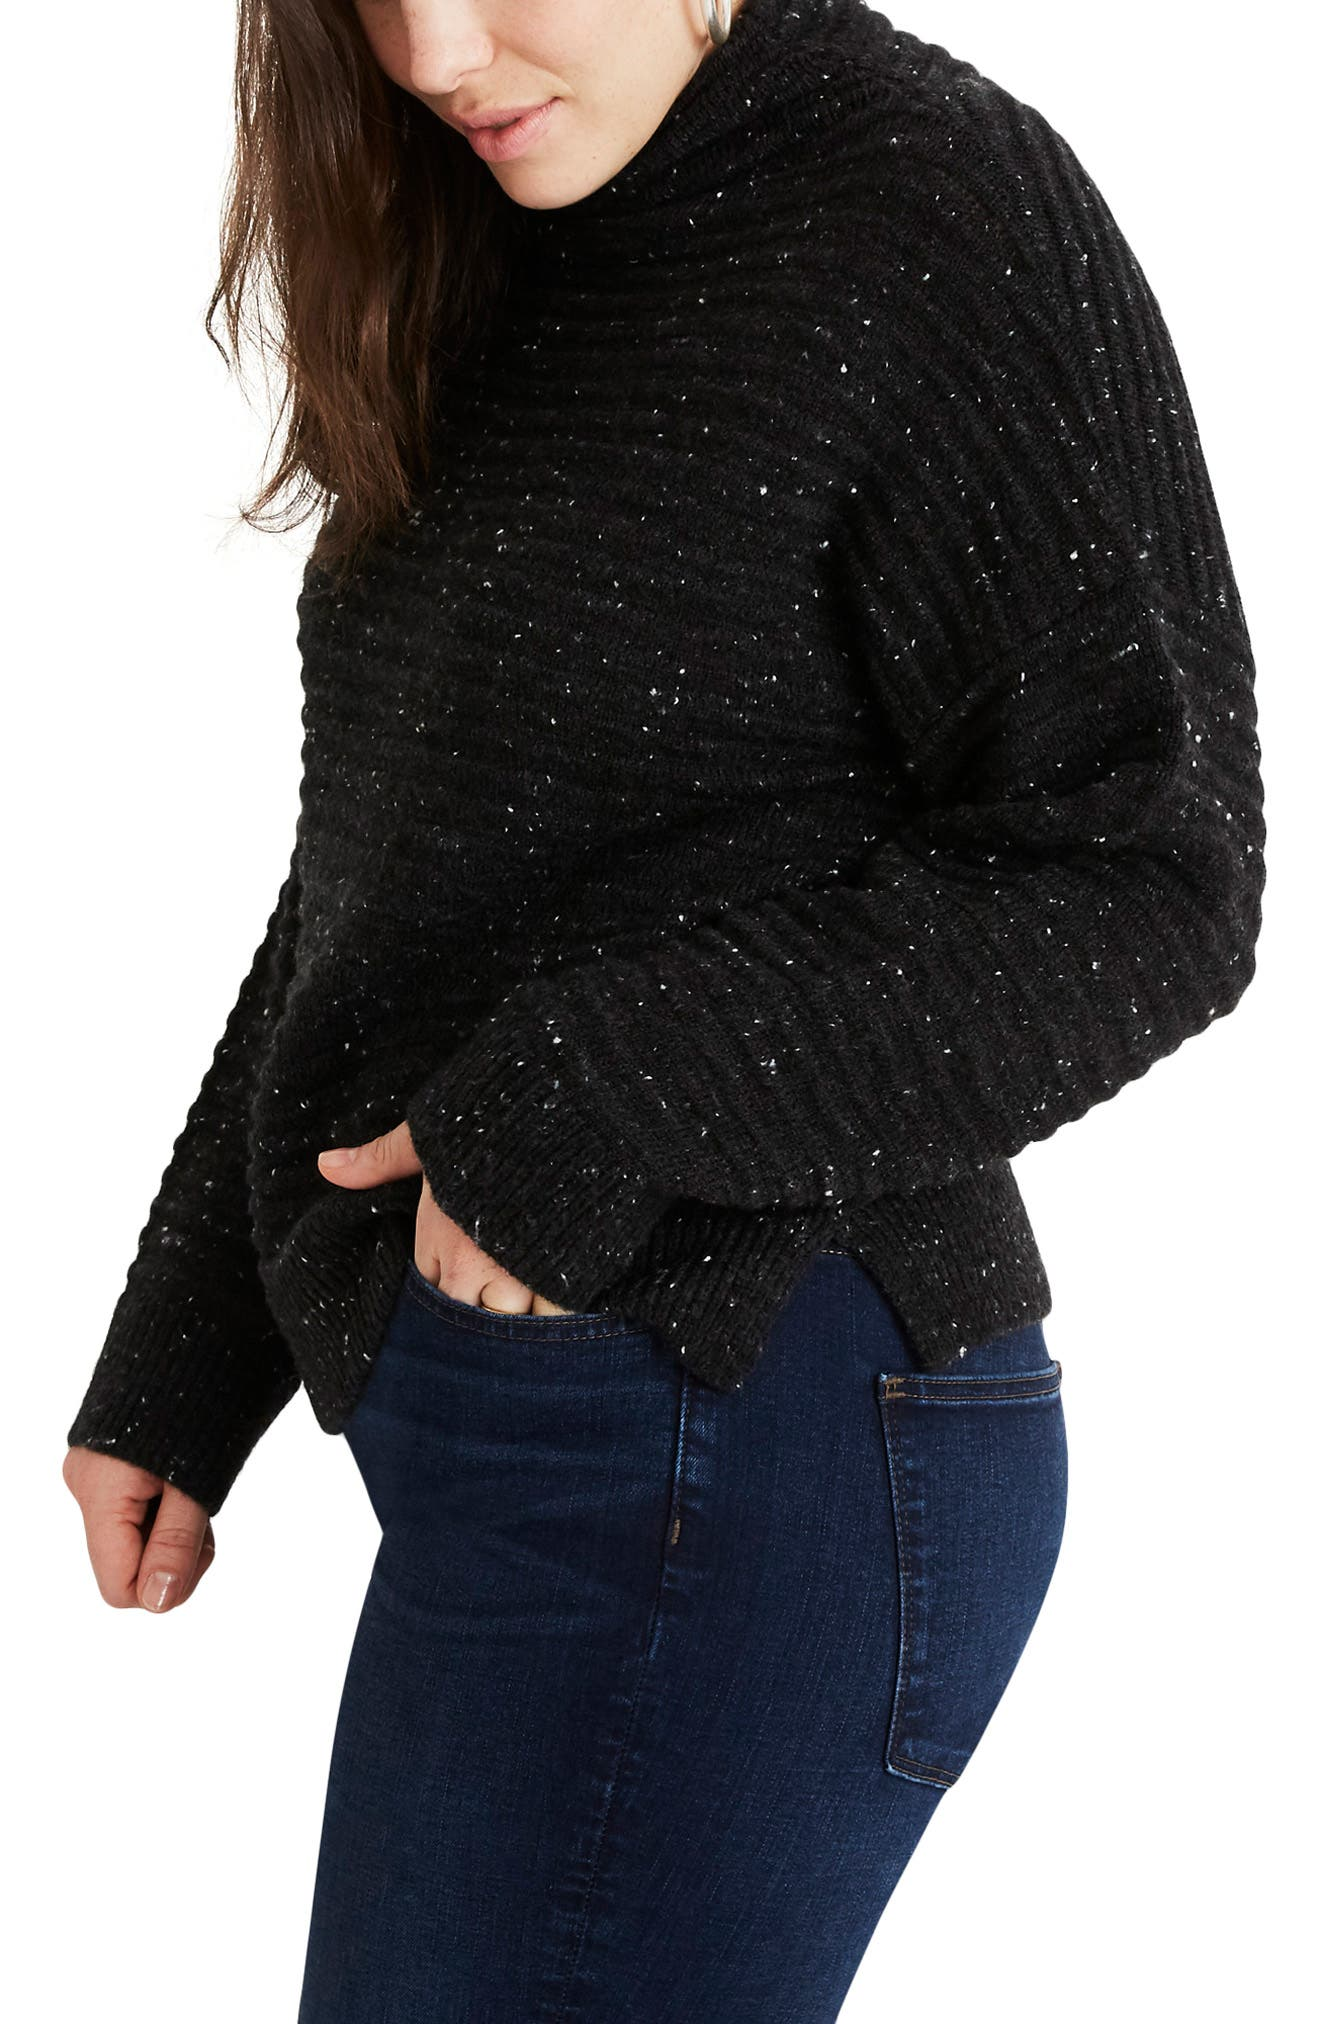 Belmont Donegal Mock Neck Sweater,                             Alternate thumbnail 8, color,                             DONEGAL STORM